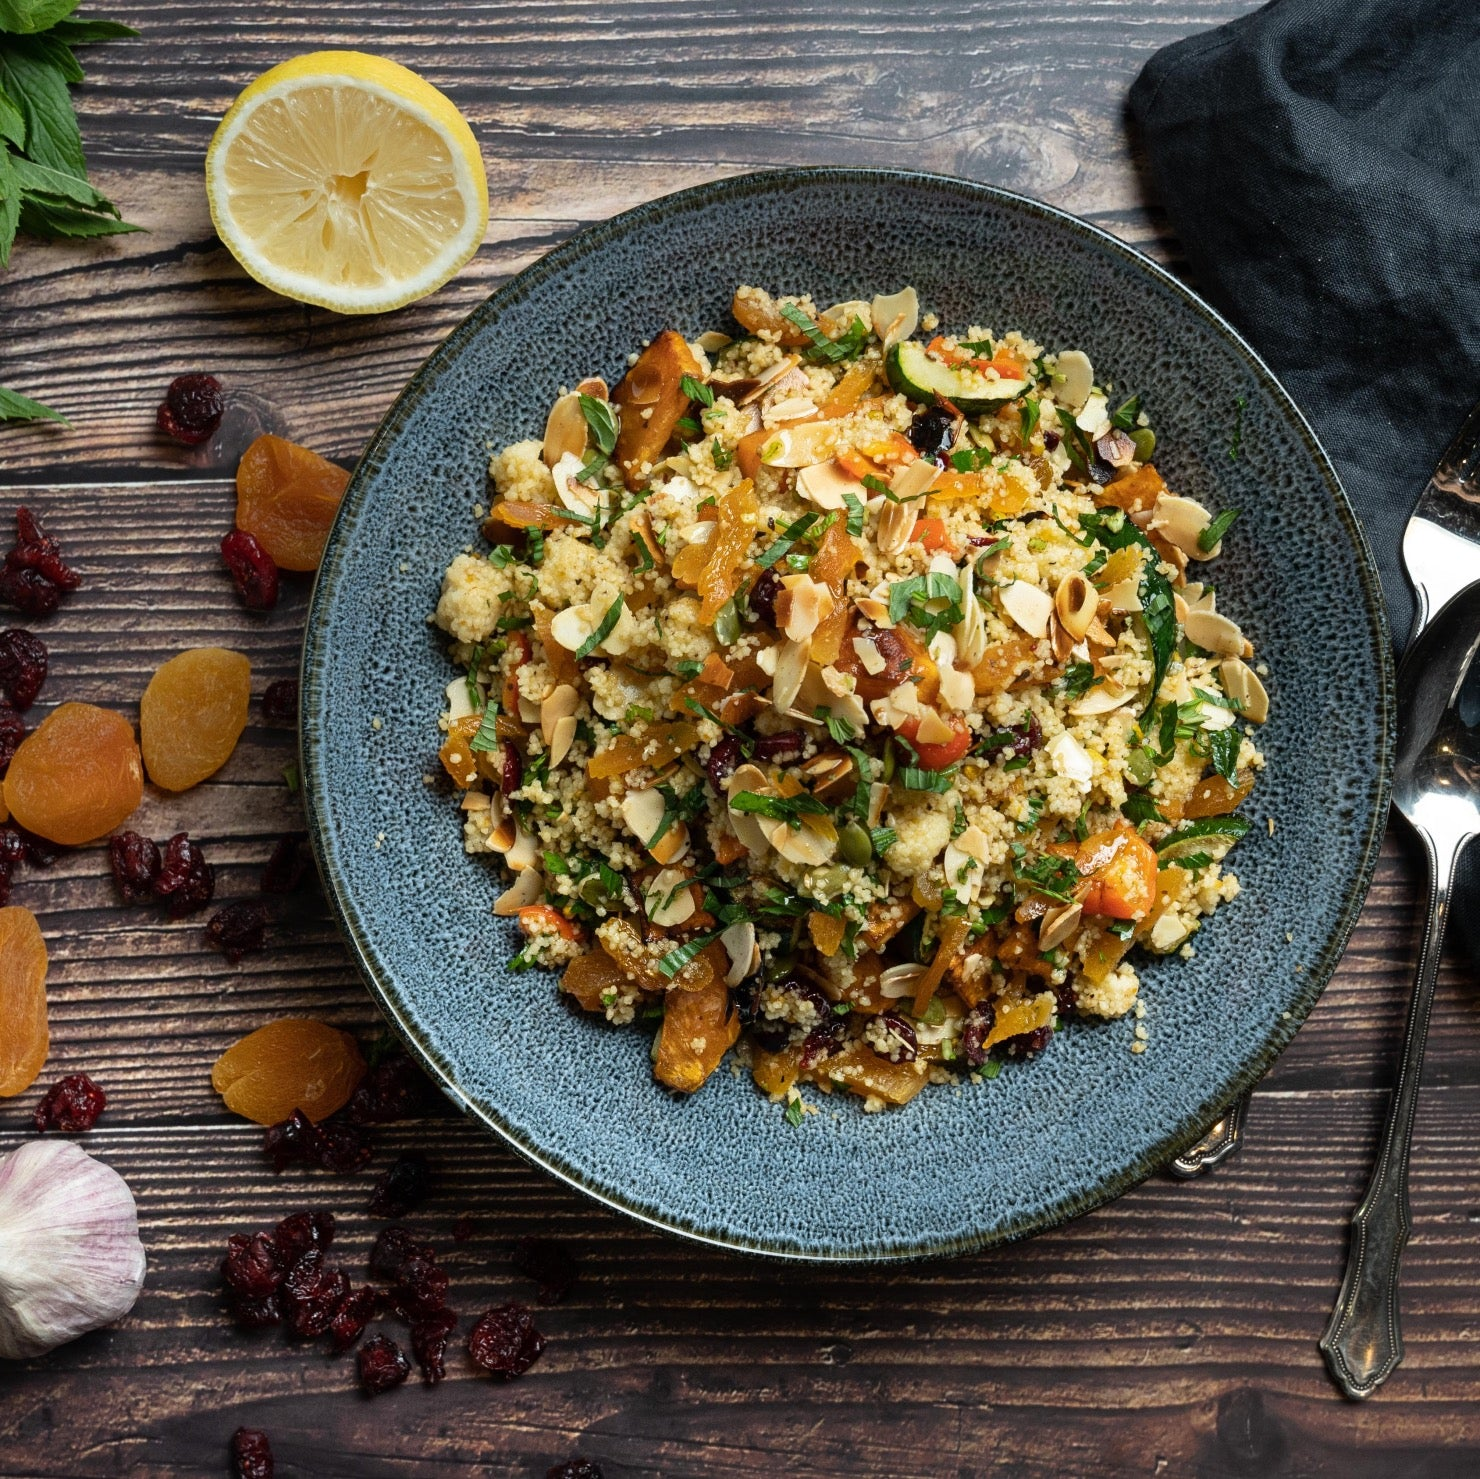 Moroccan Couscous Prepared meal in a plate